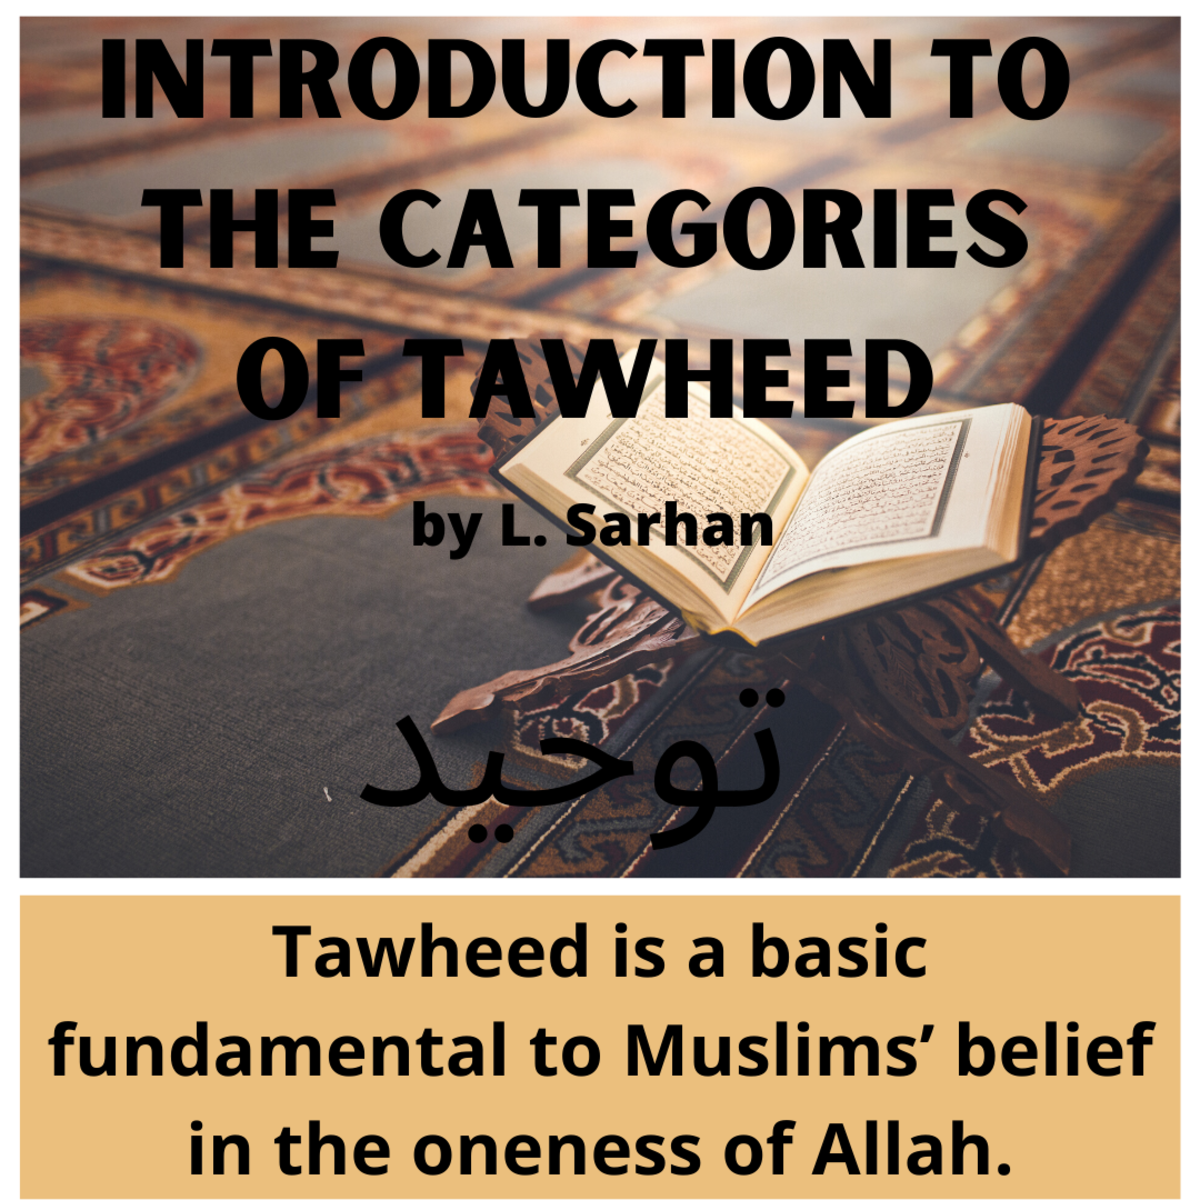 Learn more about the 3 fundamental categories to tawheed and Muslims' belief in the oneness of Allah.